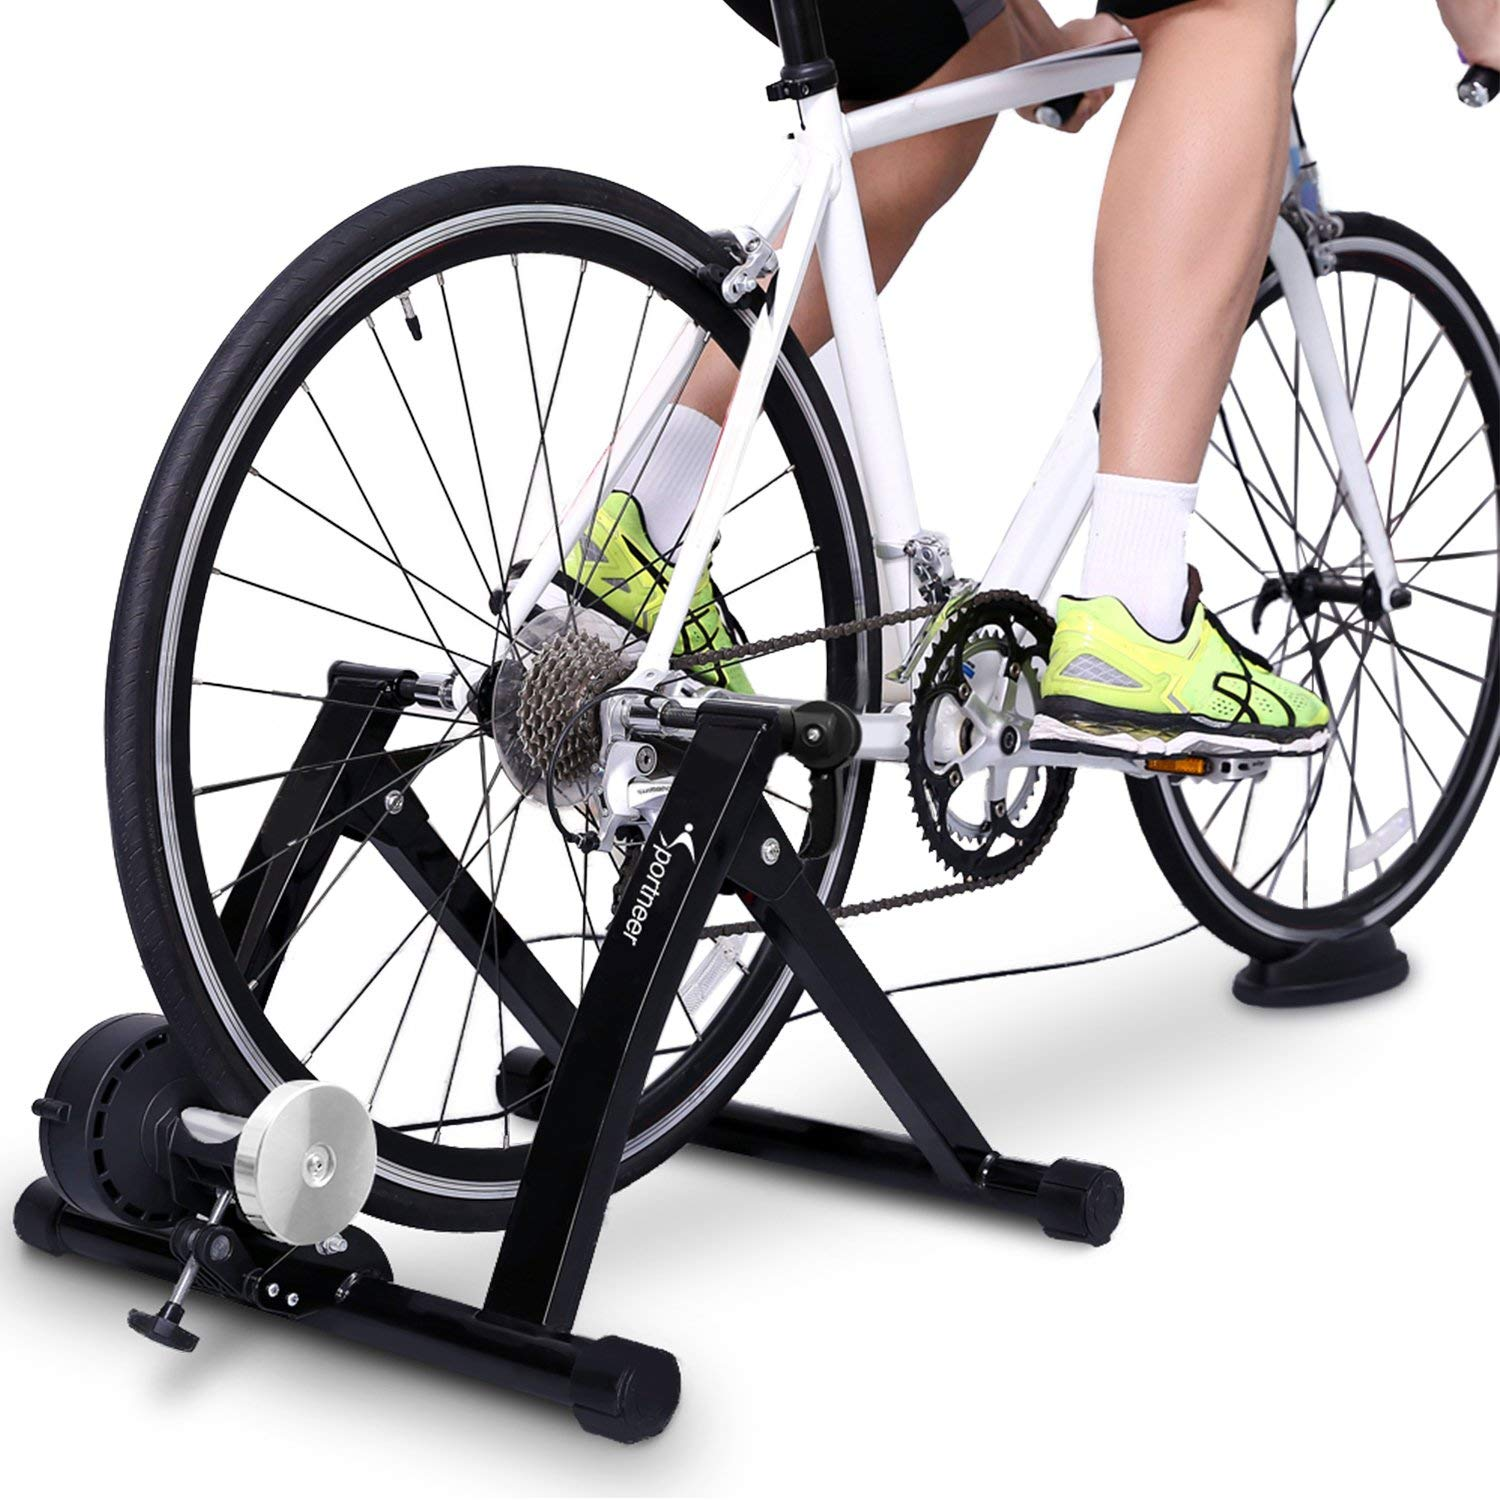 elite magnetic cycle trainer instructions